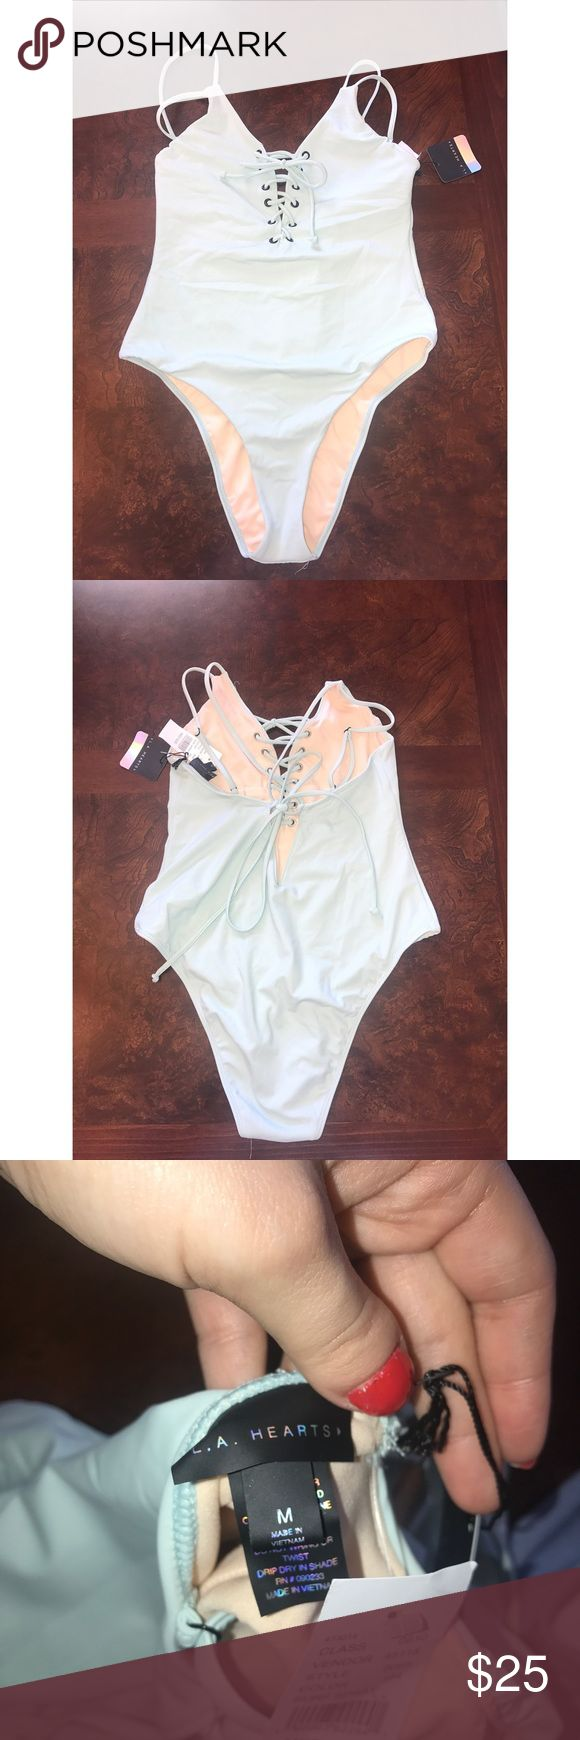 Pacsun bathing suit! -ties in the front and back PacSun Swim One Pieces